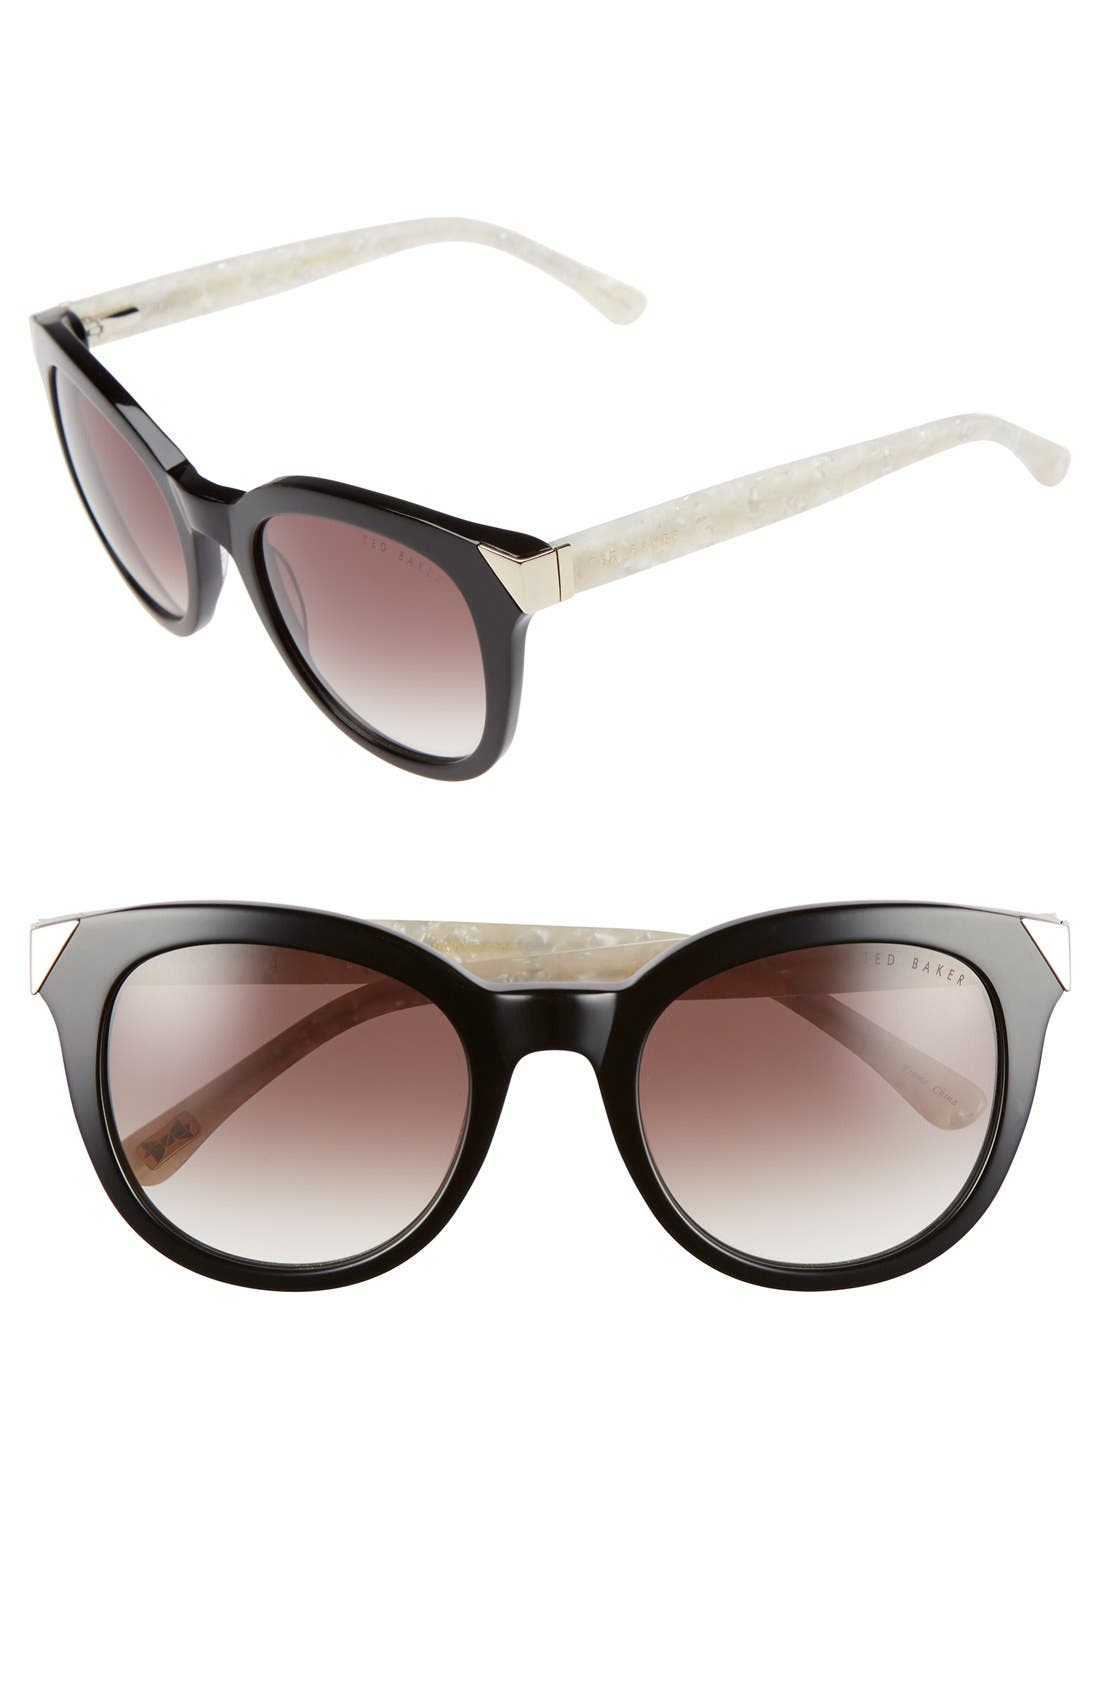 52mm Metal Accent Sunglasses,                         Main,                         color, 001